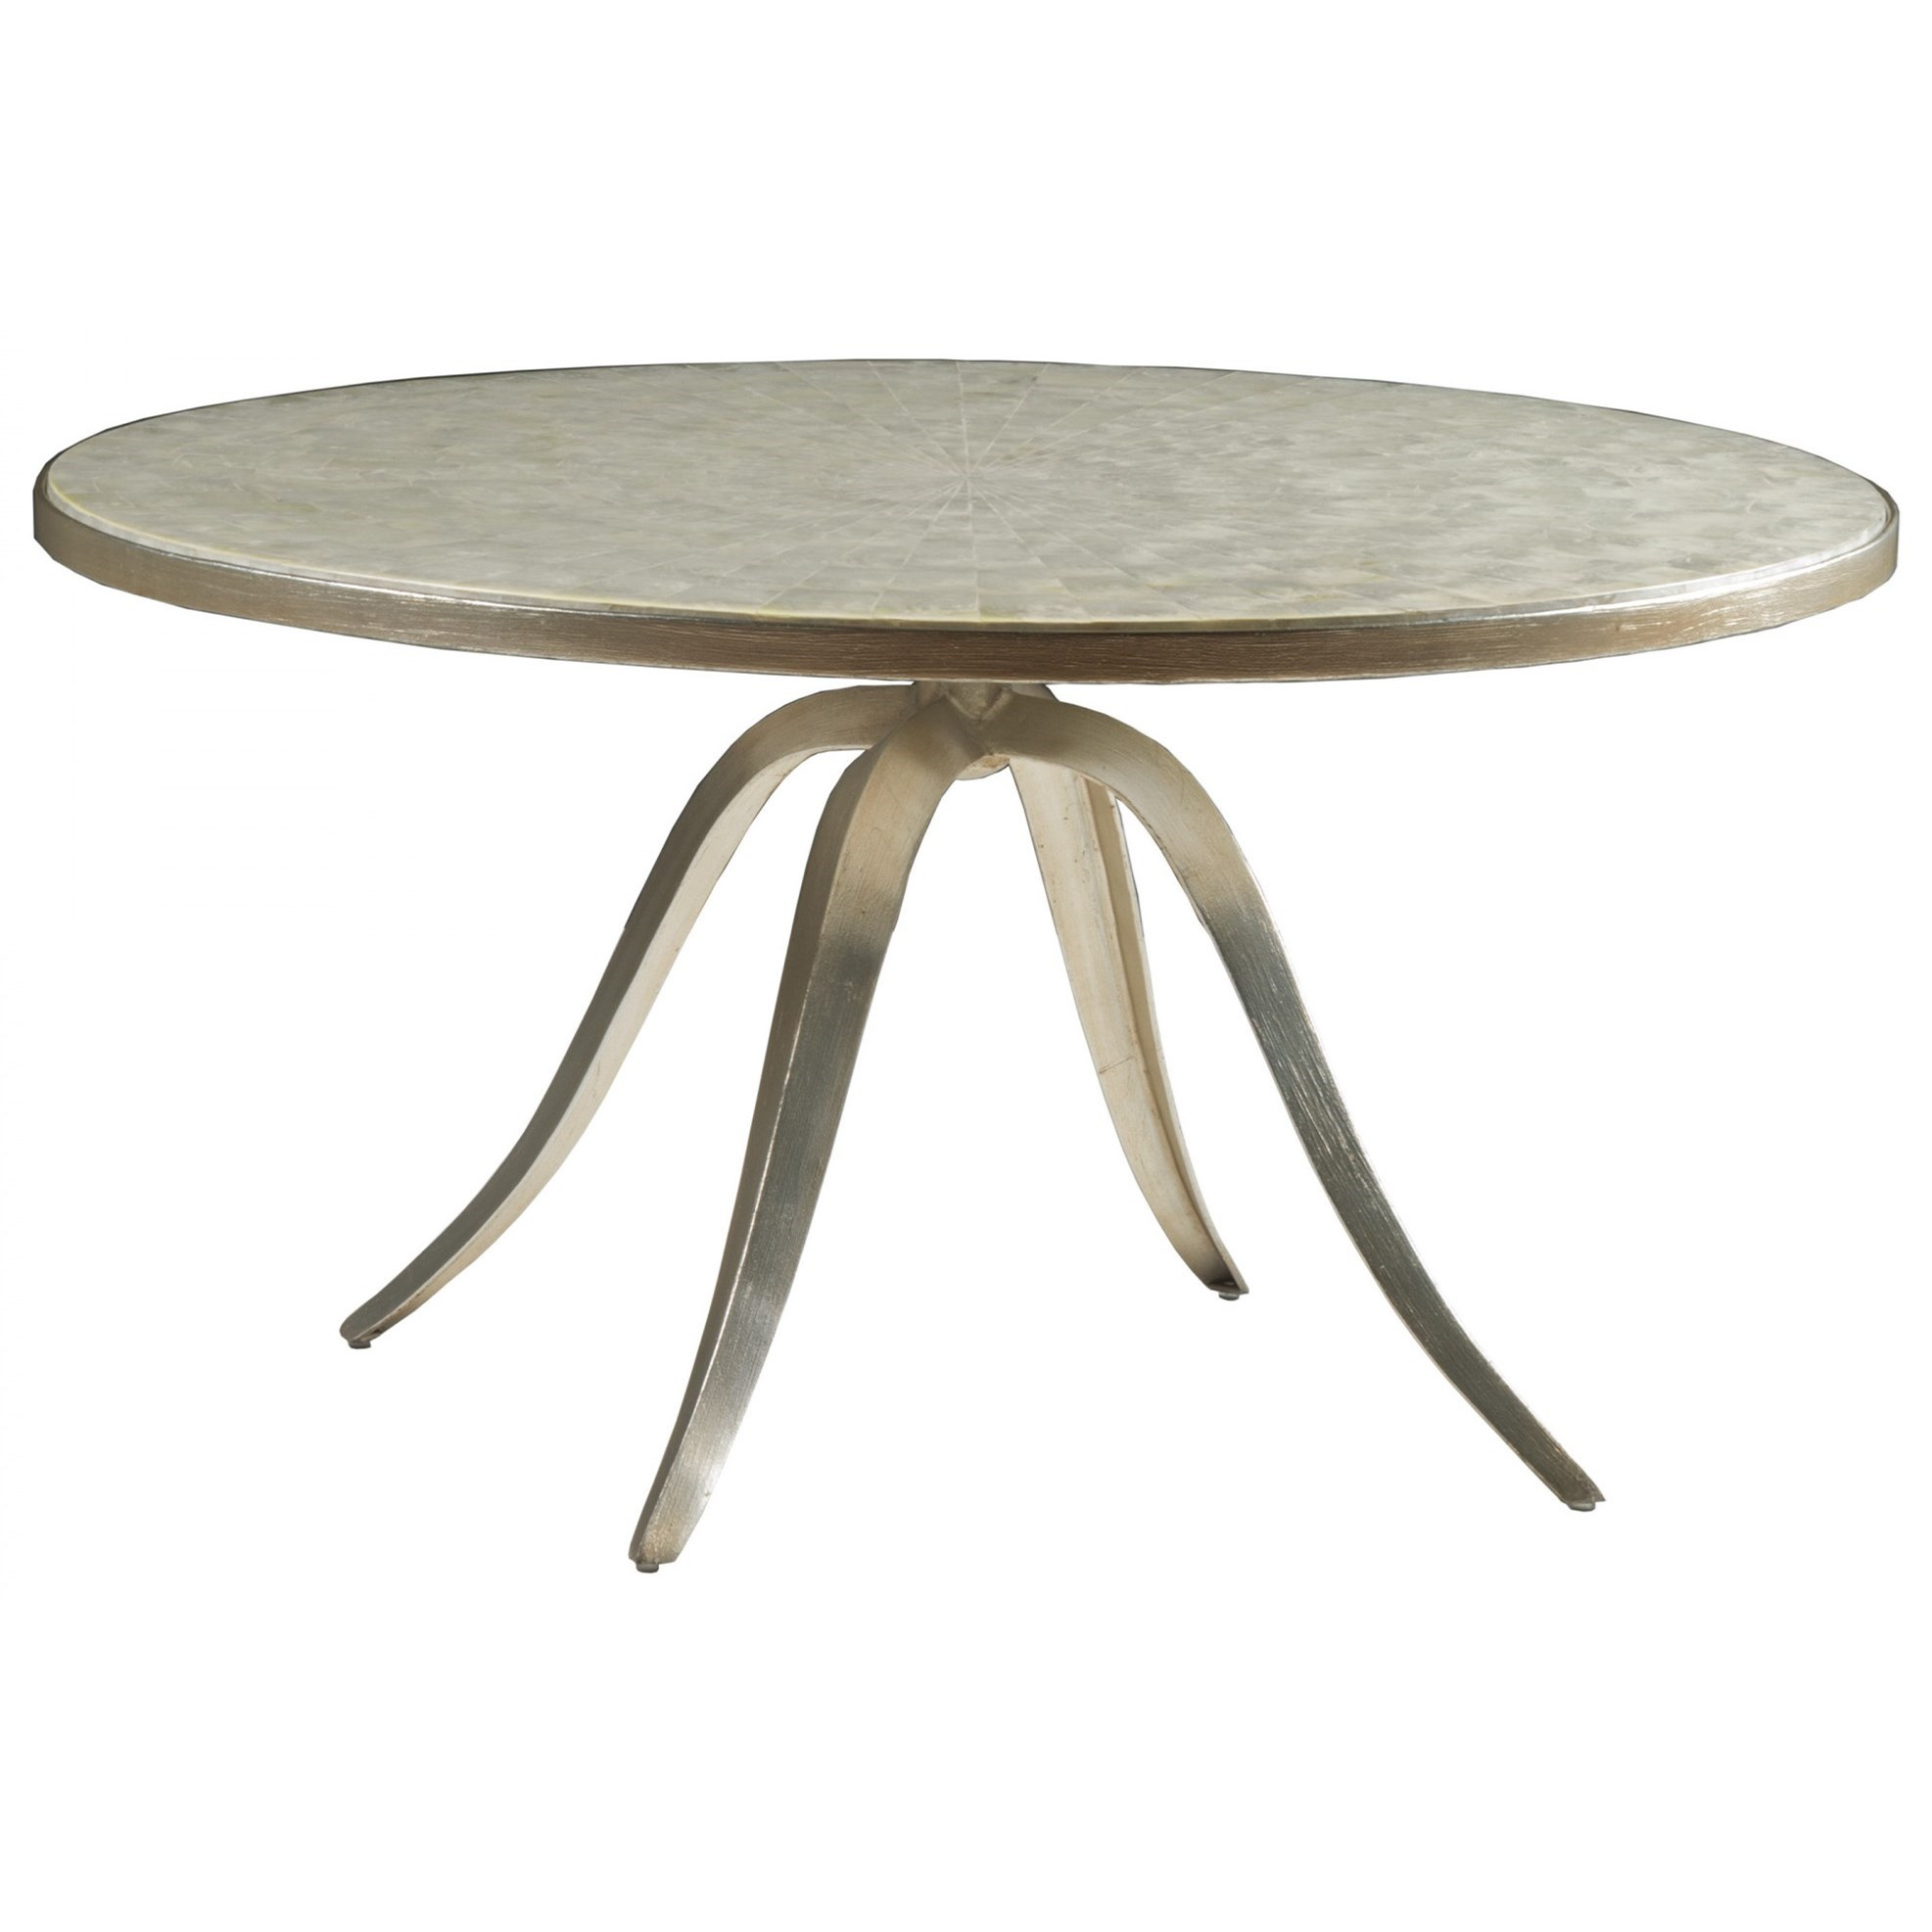 Capiz Round Cocktail Table by Artistica at Baer's Furniture